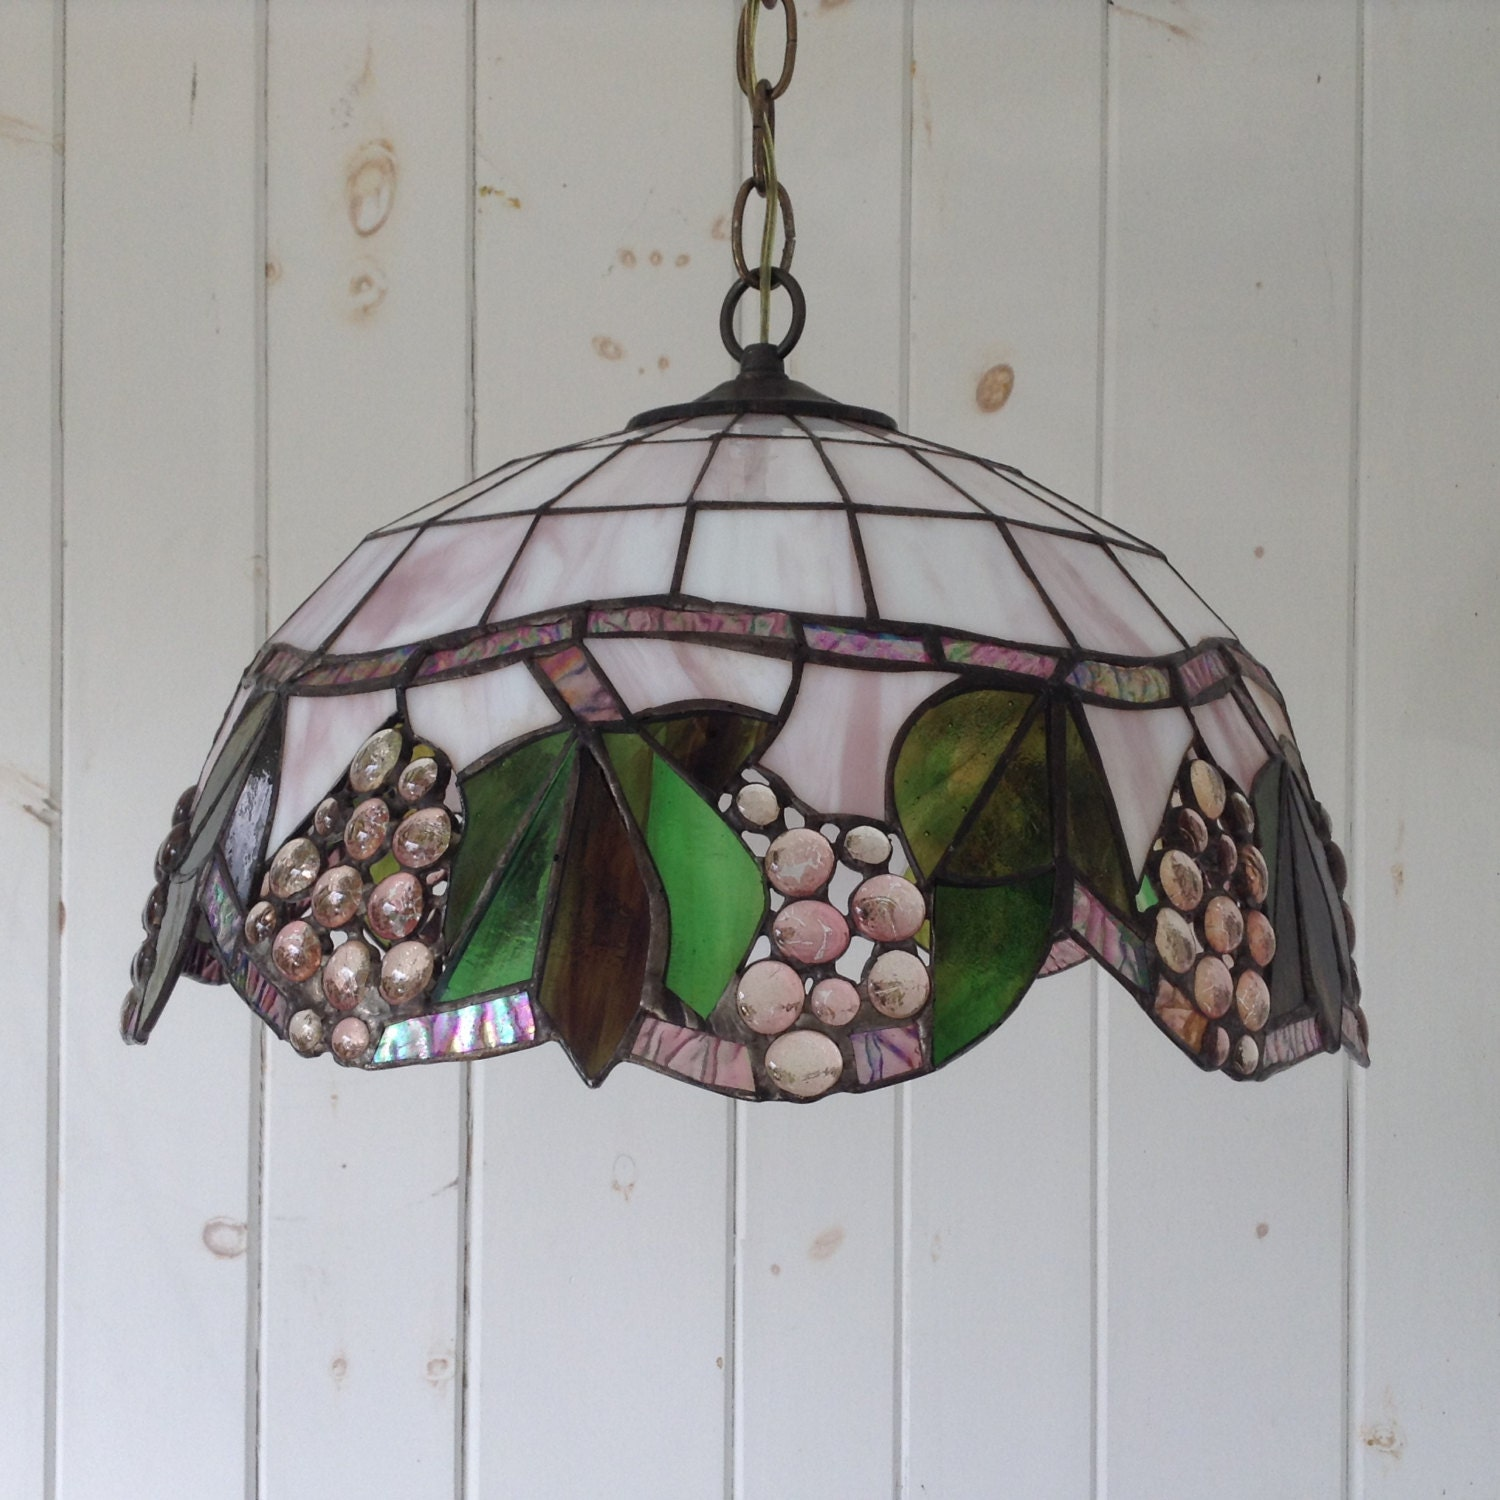 Tiffany Style Stained Glass Hanging Light Fixture Lavender